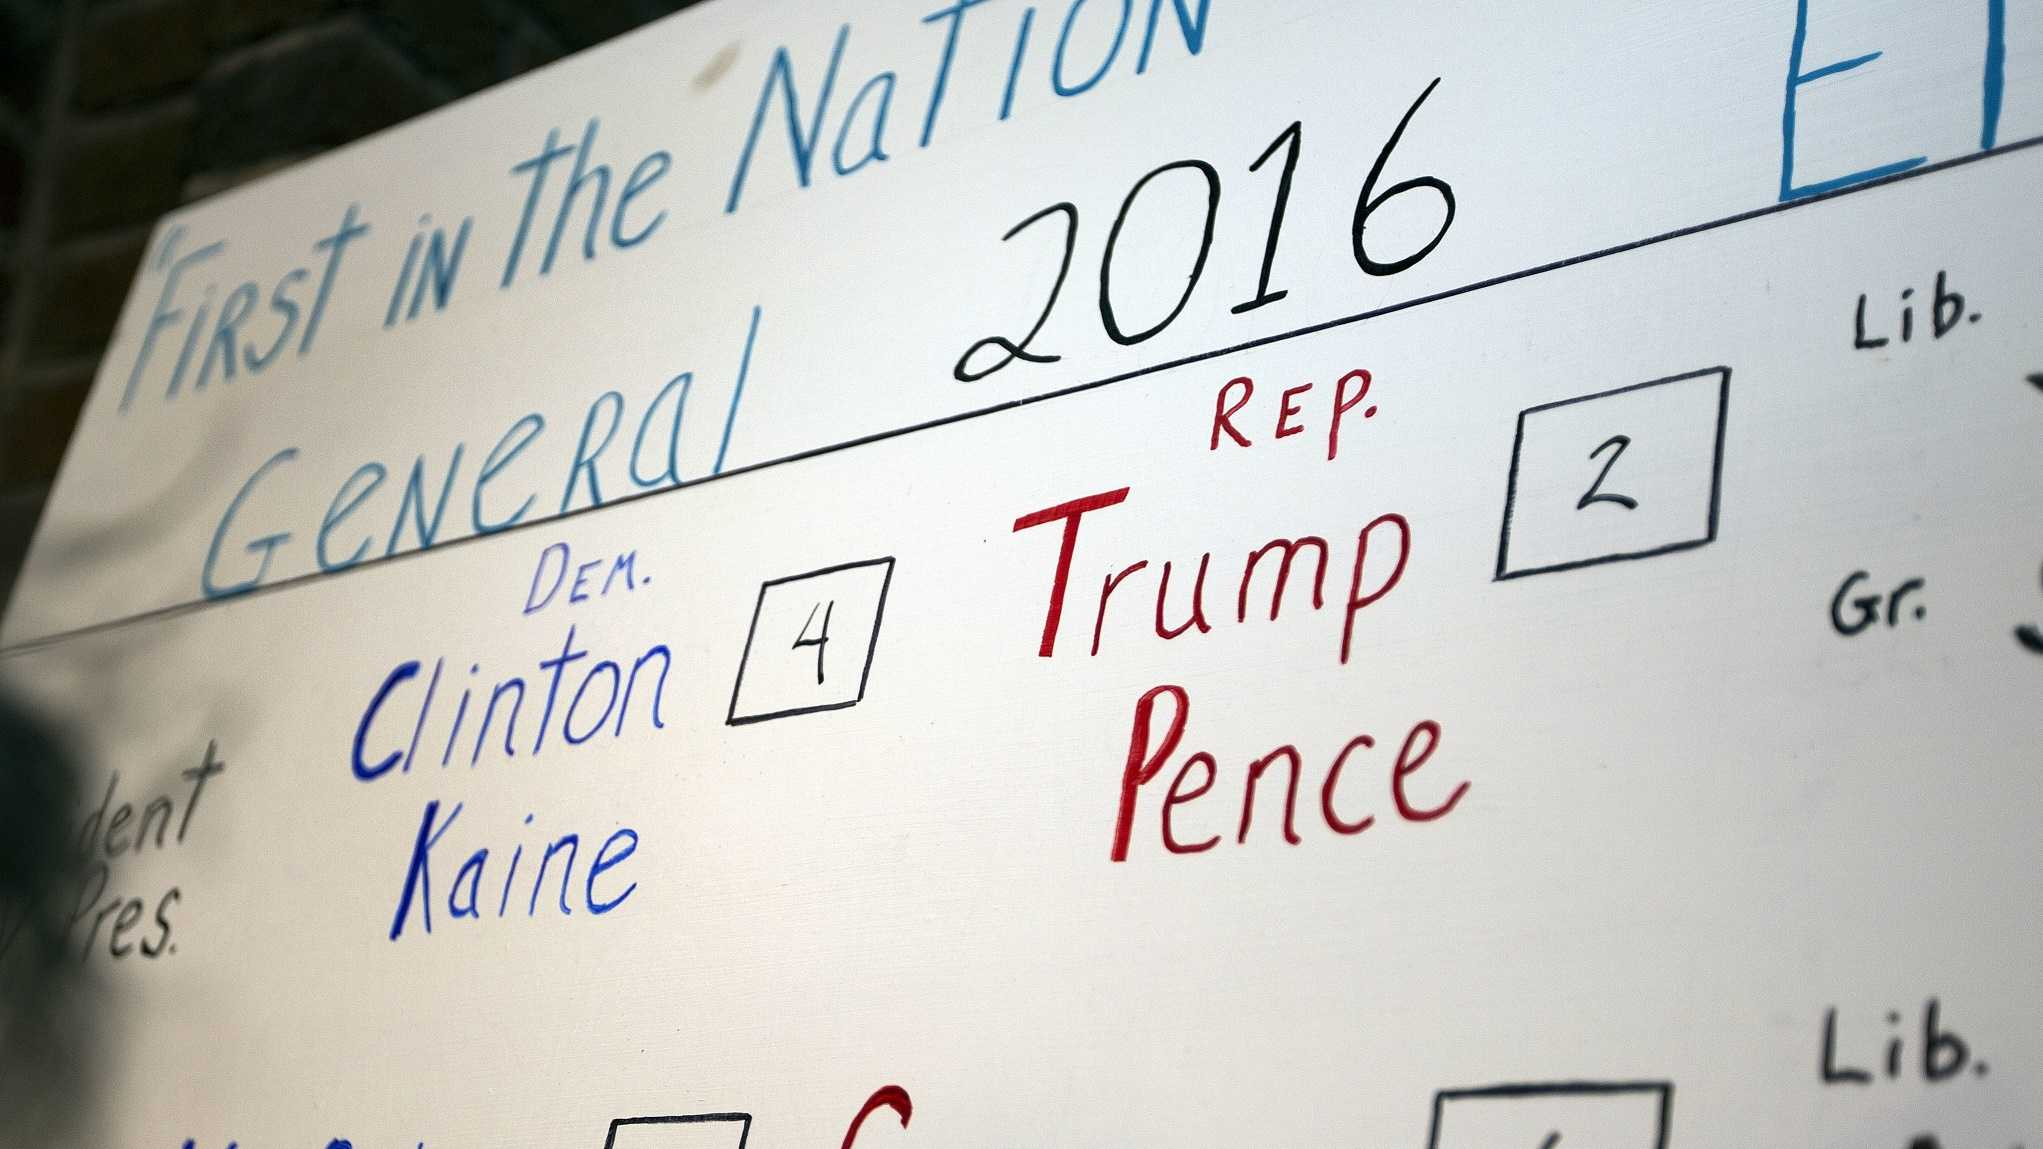 The tally board in Dixville Notch, N.H., where the nation's first voters cast their ballots on Election Day, shows Democratic presidential candidate Hillary Clinton beating Republican Donald Trump 4-2.